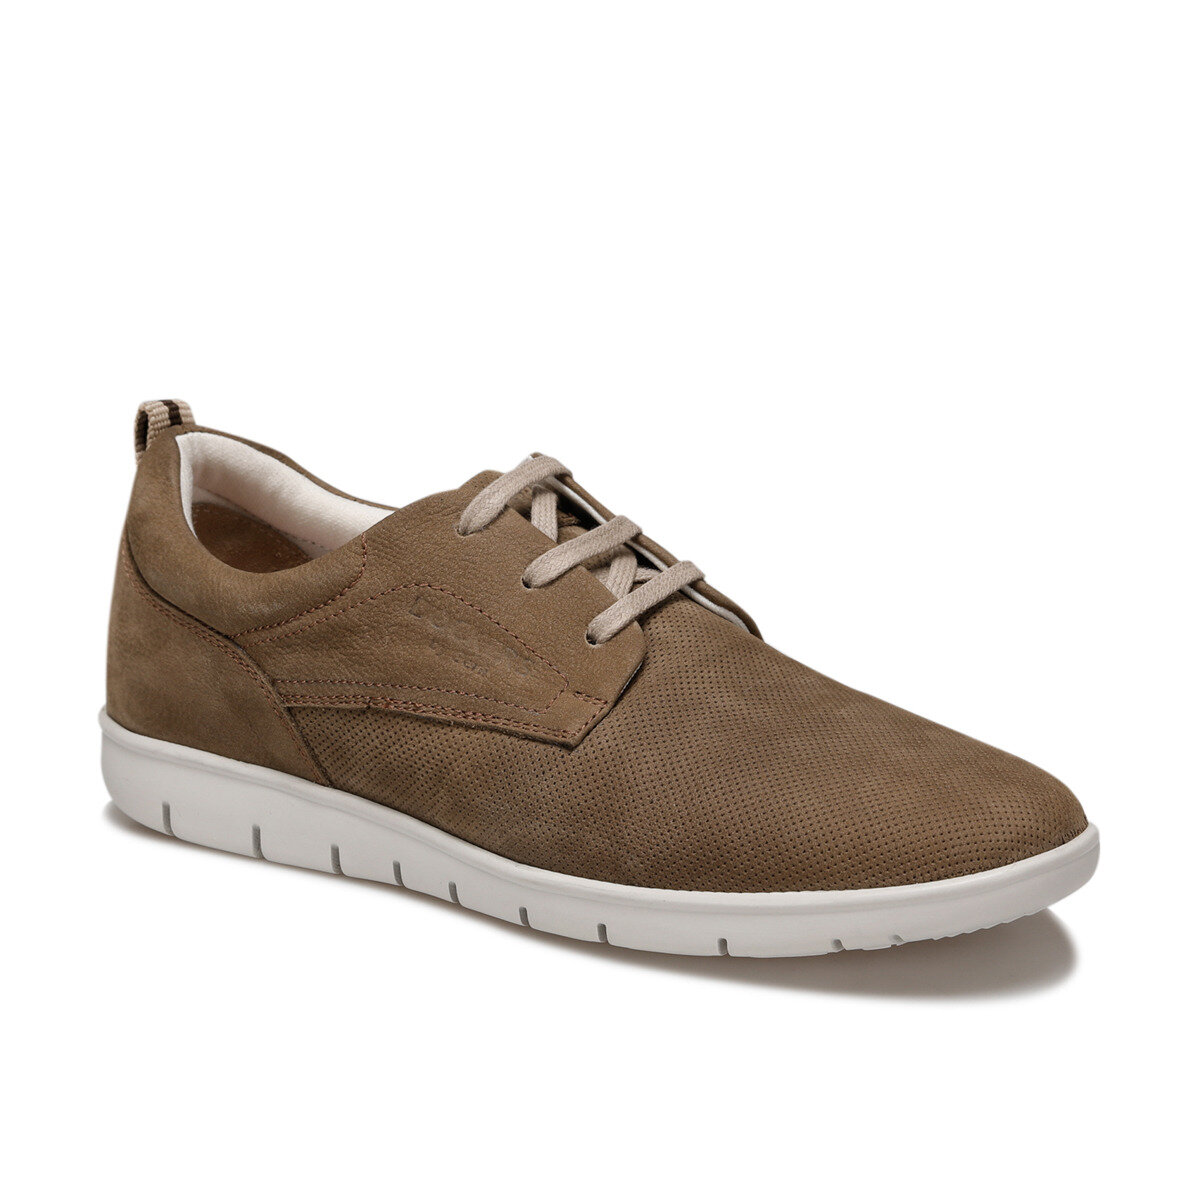 FLO 228210 Sand Color Comfort Shoes By Dockers The Gerle